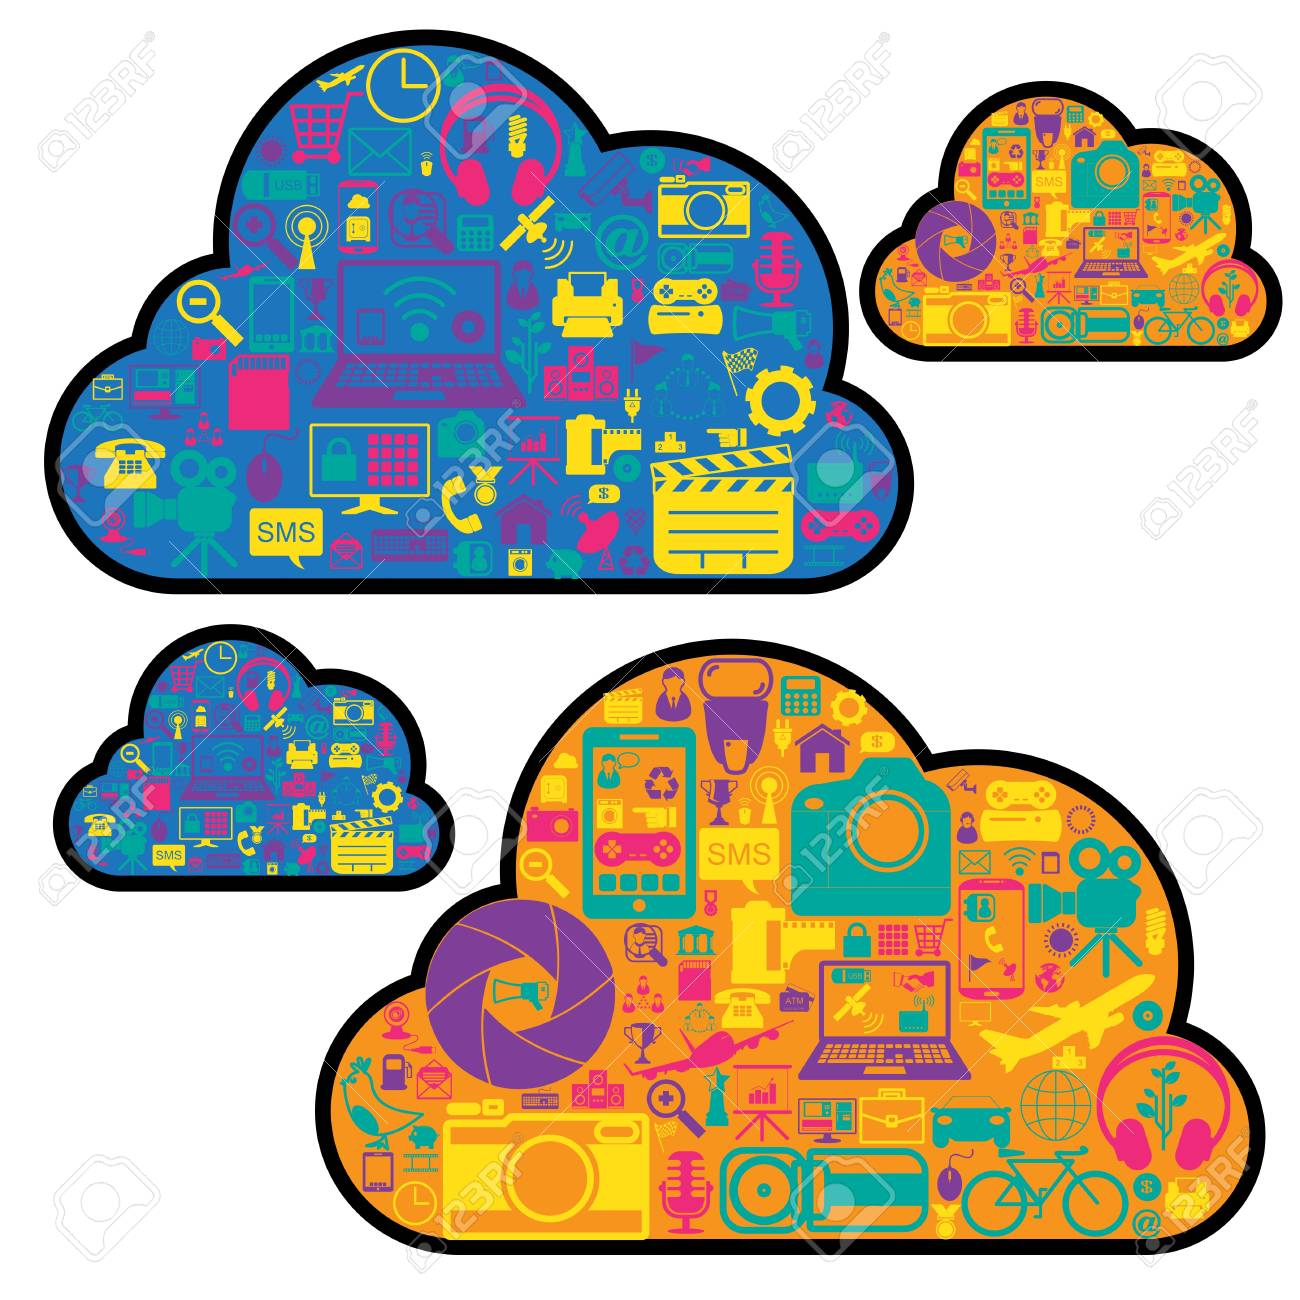 cloud network icons Stock Vector - 21324666